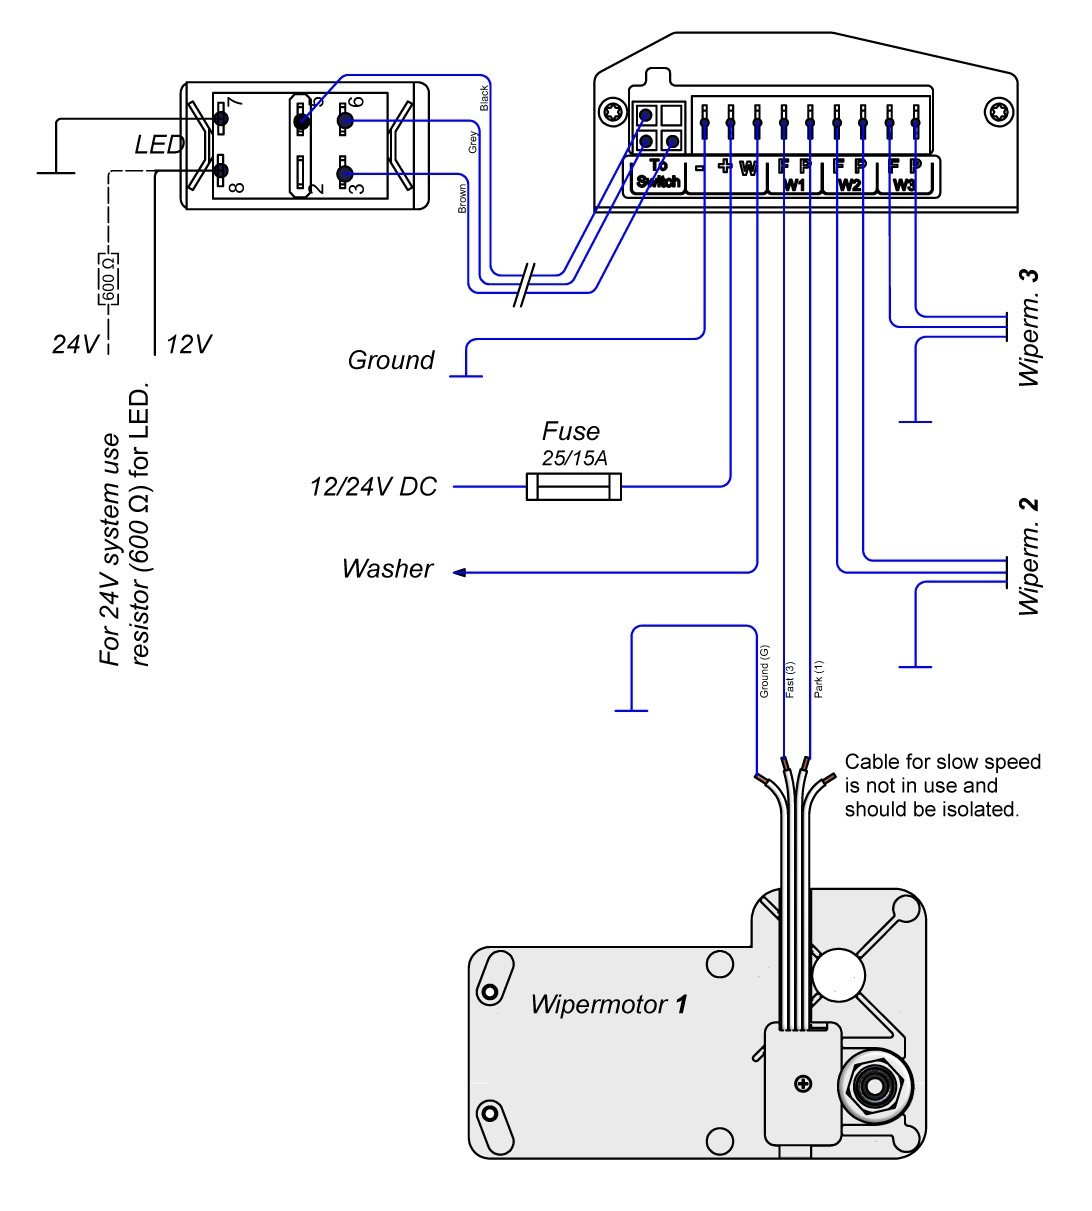 hight resolution of 1982 ford wiper motor wiring wiring diagram imp ford wiper motor wiring 2002 chevy wiring wiper